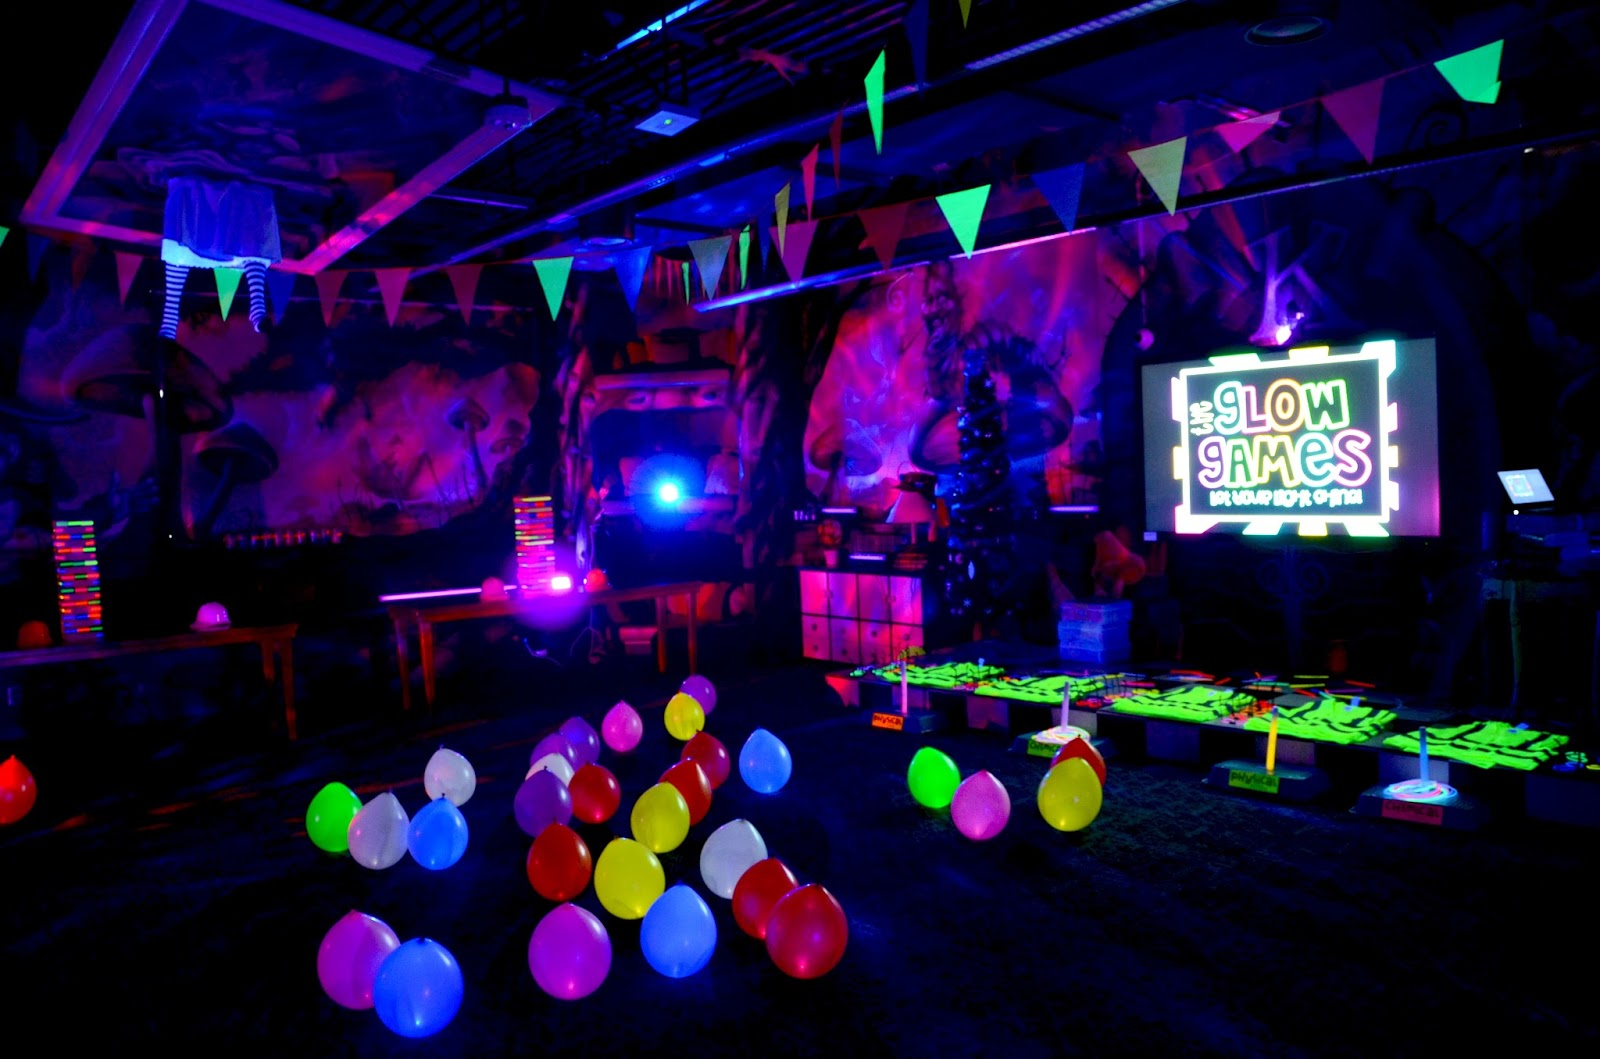 Elementary Shenanigans: The Glow Games: Games for the clroom on glow sticks in water, glow sticks cool, glow stick party decoration ideas, glow stick outdoor ideas, led lighting ideas, glow sticks in balloons, glow stick costume ideas, fun with glow sticks ideas, glow stick craft ideas, glow stick game ideas, glow sticks in the dark, 10 awesome glow stick ideas, glow stick decorating ideas, glow stick centerpiece ideas, glow in the dark ideas,